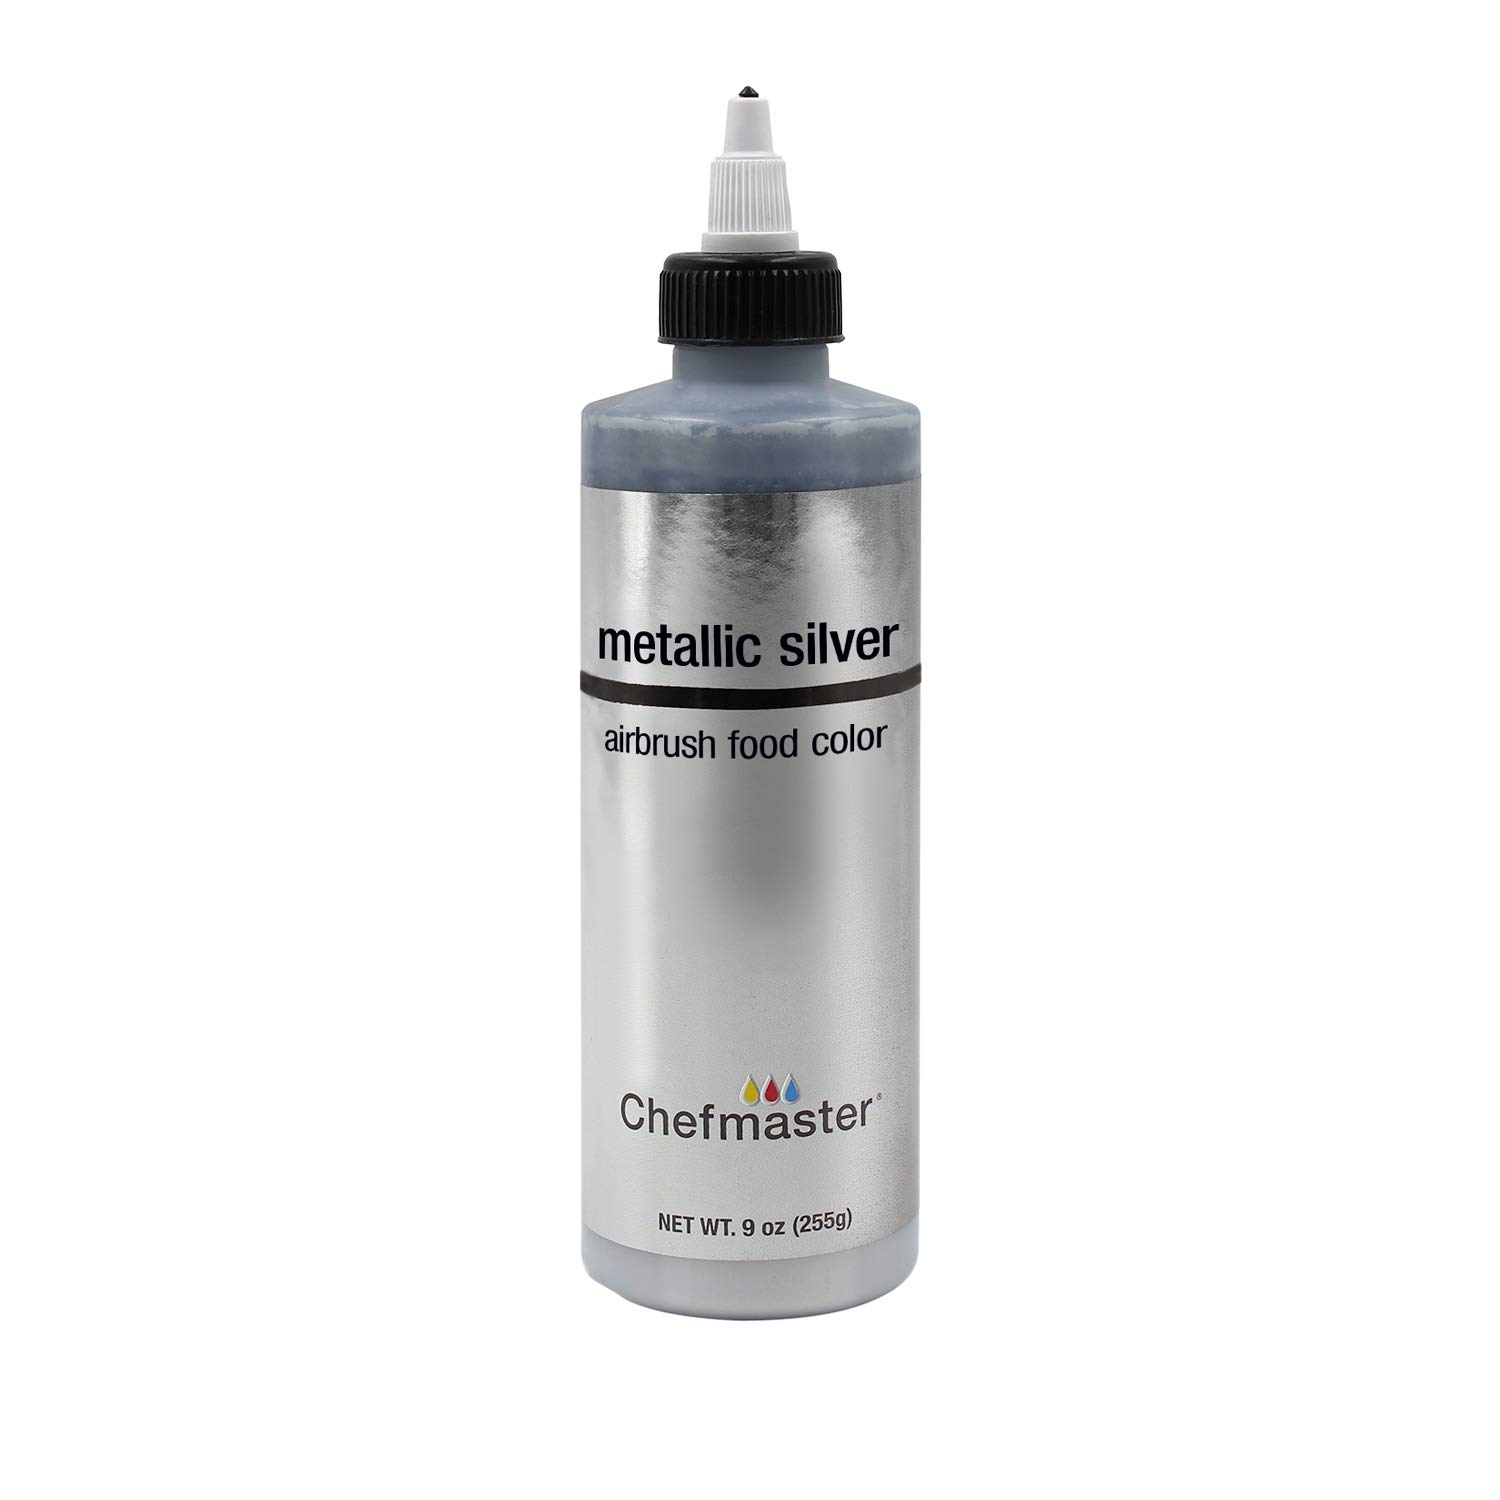 Chefmaster Airbrush Food Color, 9-Ounces, Metallic Silver